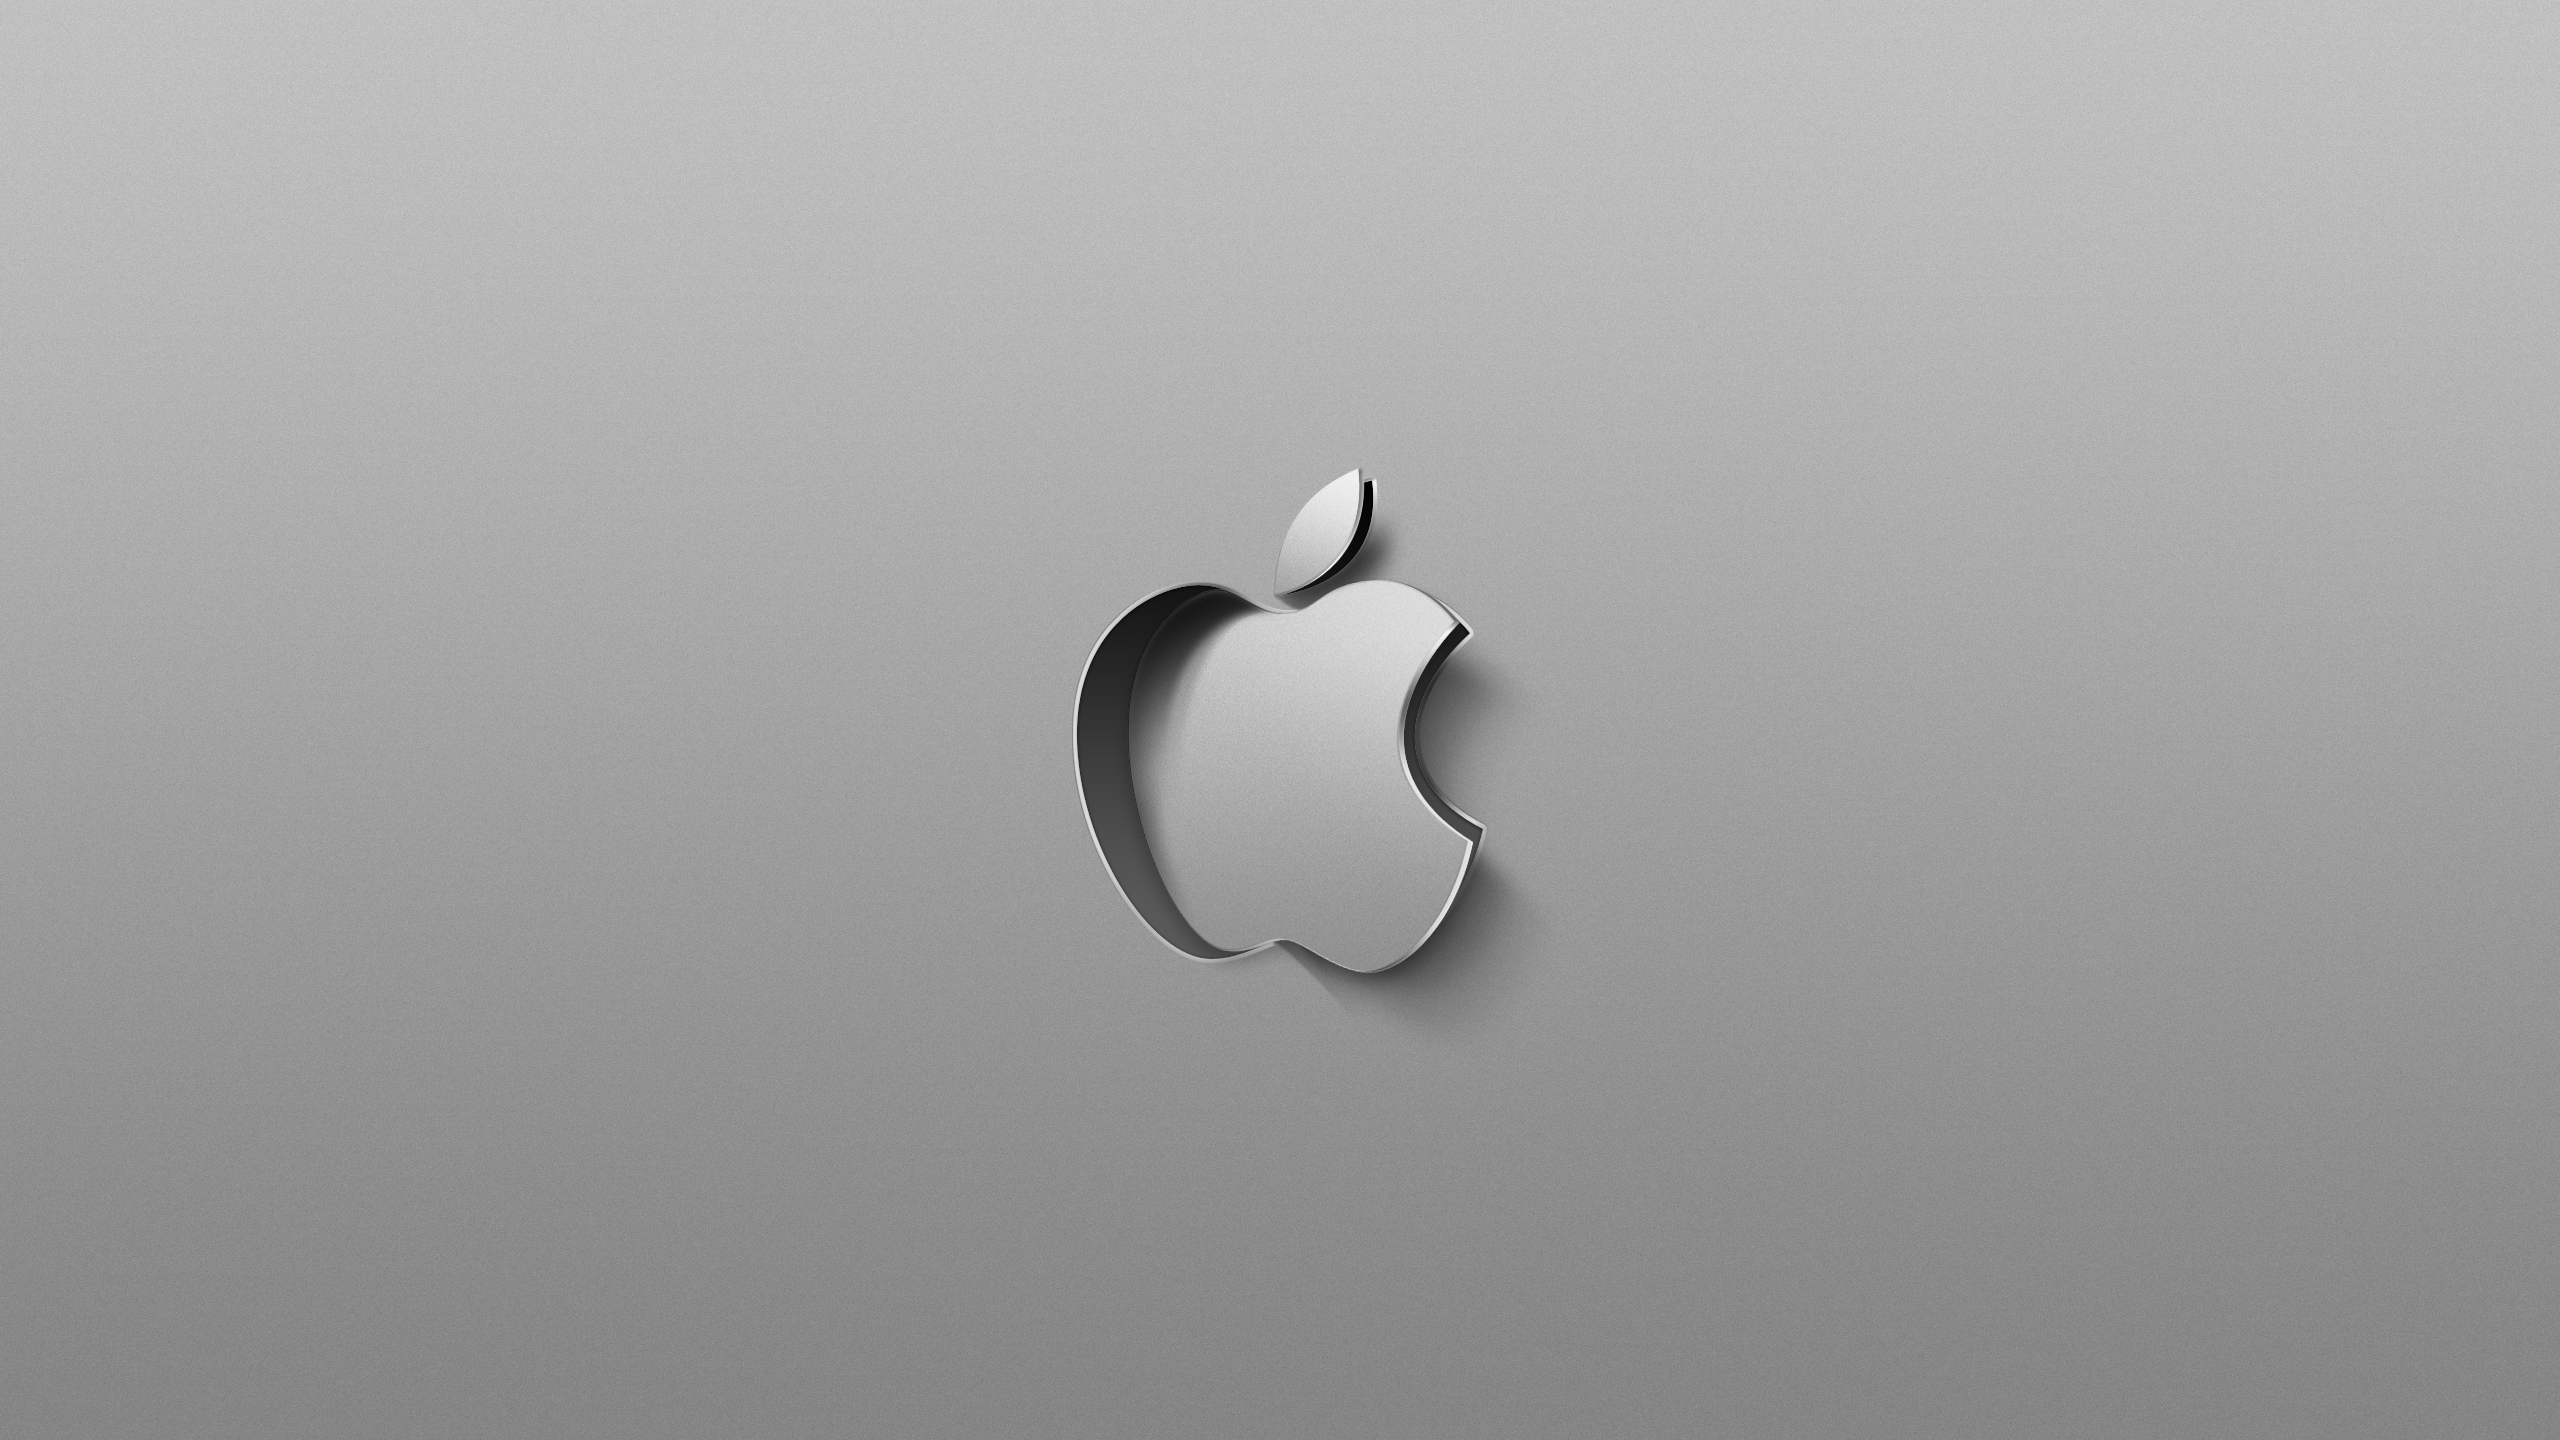 image located in category apple mac wallpapers 2560x1440